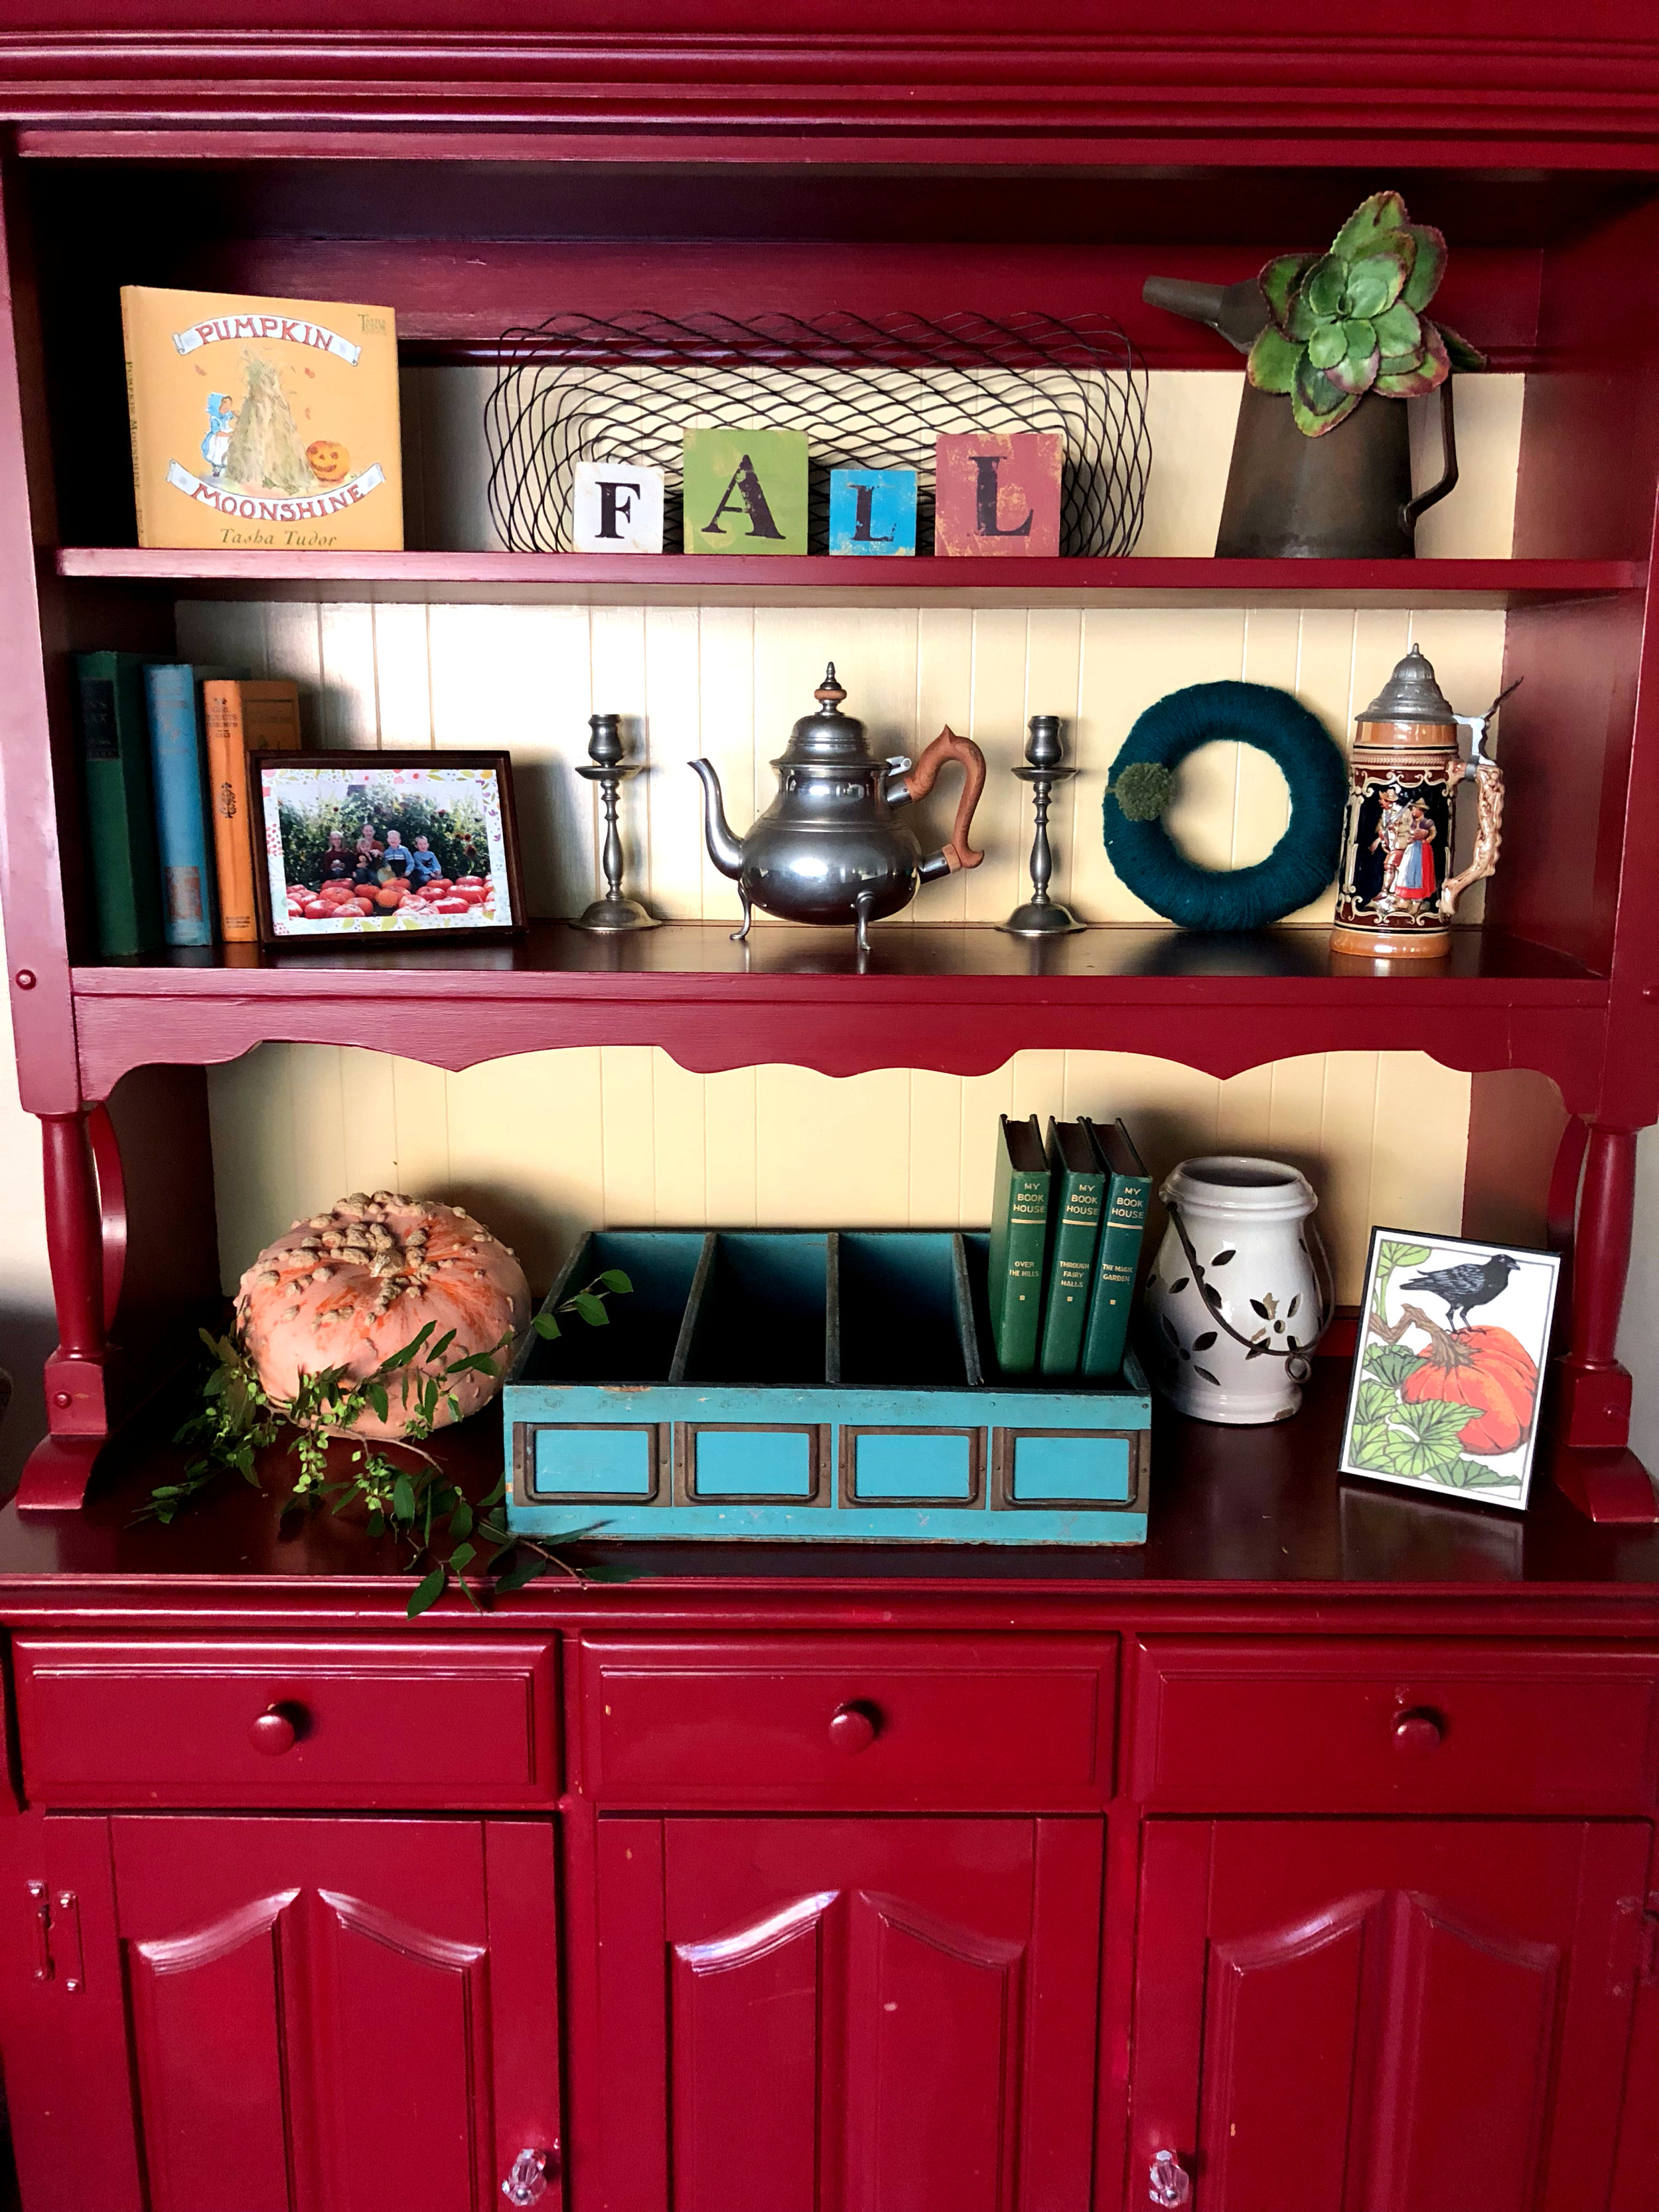 A favorite children's book, pewter pieces from a dear friend, a photo of my children when they were little, old books from a neighbor's yard sale, yarn wreath made by my daughter, an old French drawer, an old oil can, and a card from Trader Joe's taped to a frame.